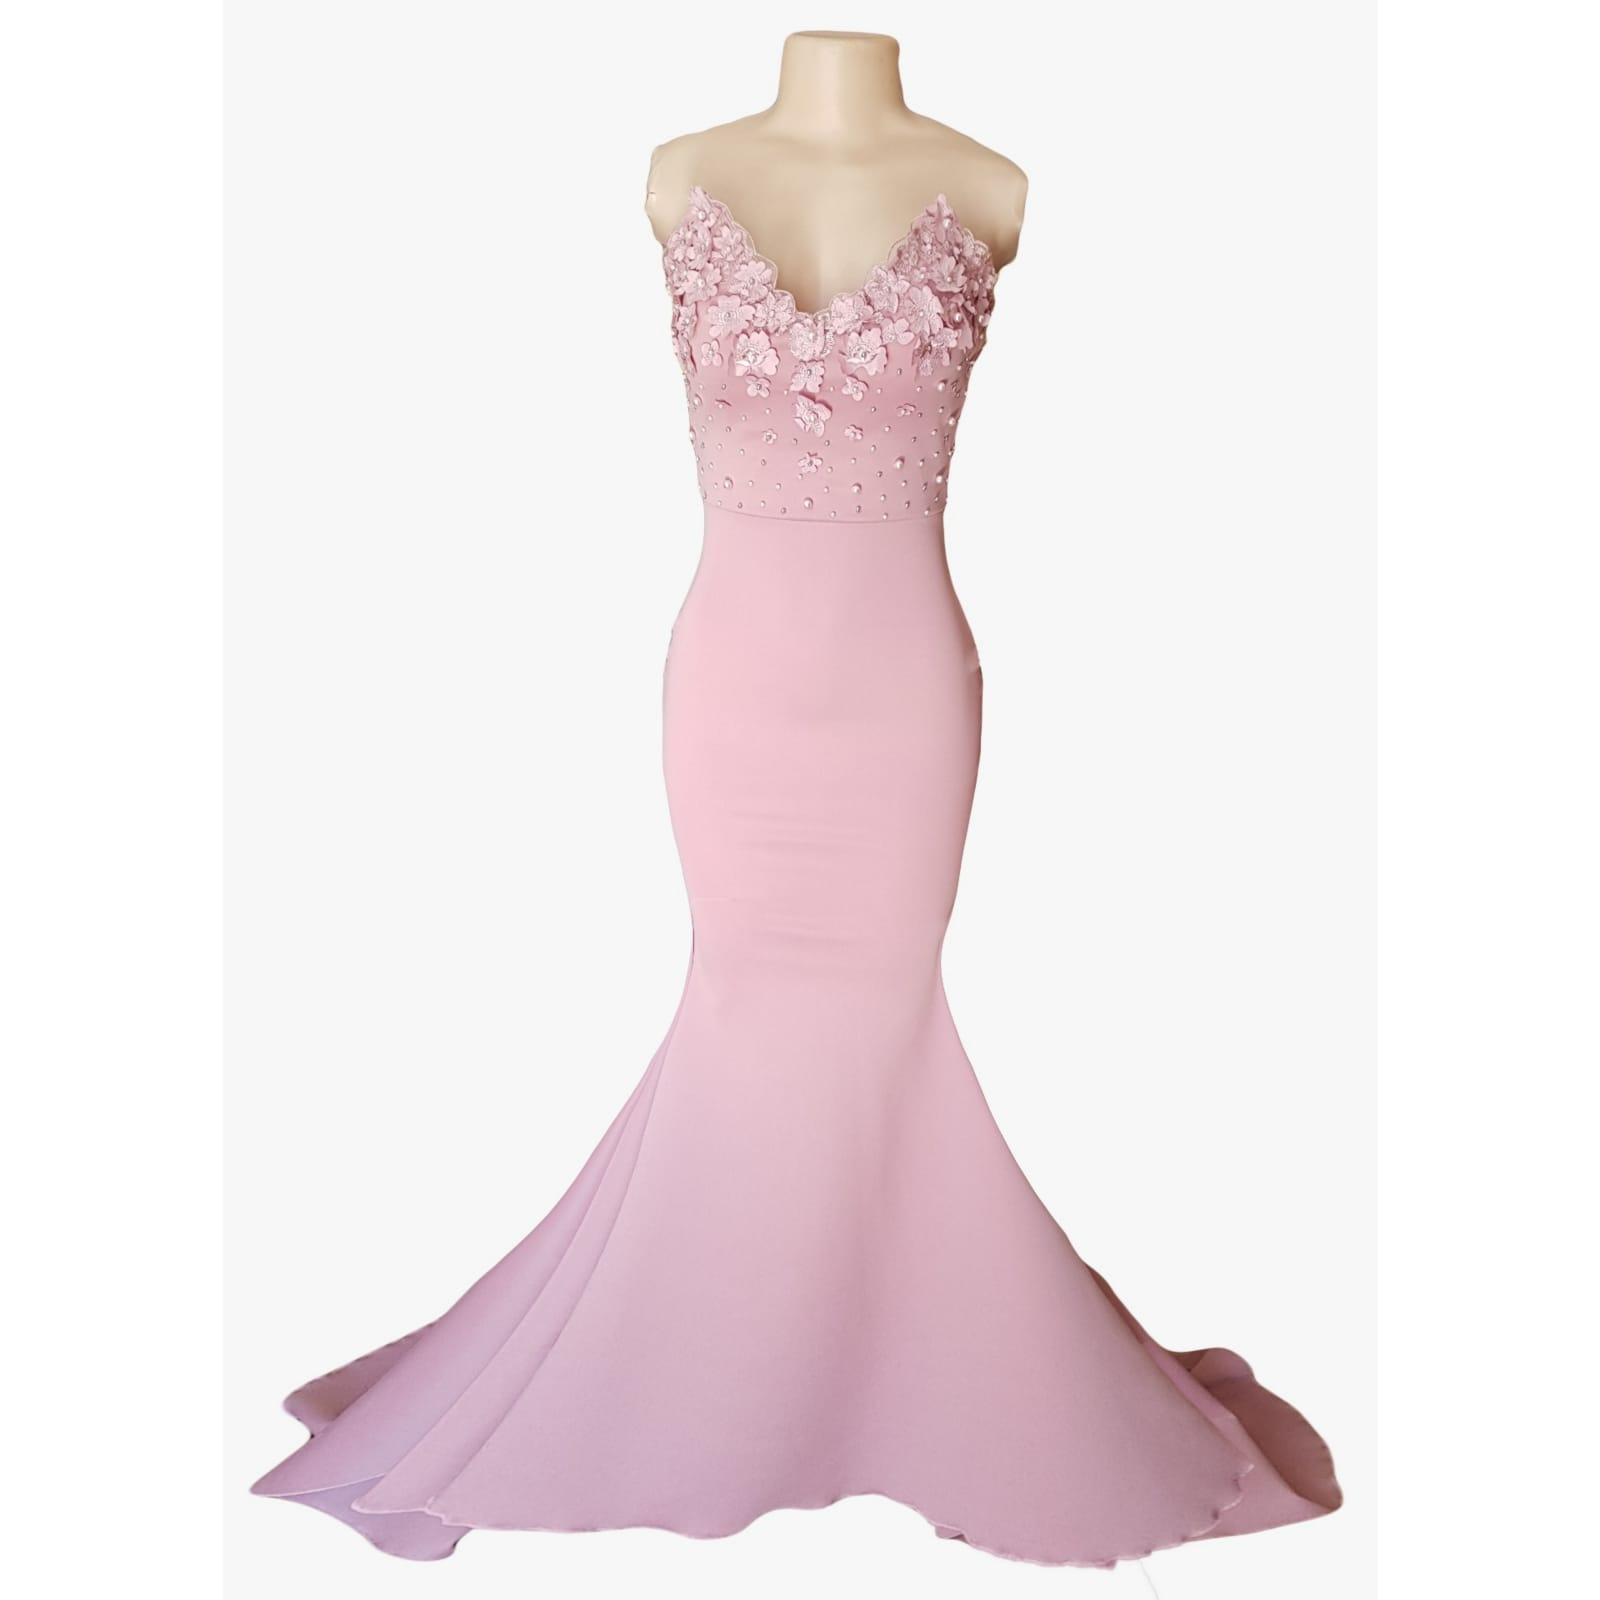 Pale pink soft mermaid matric dance dress 6 pale pink soft mermaid matric dance dress, bodice detailed with pearls and 3d lace, with a train and detachable neck strap.